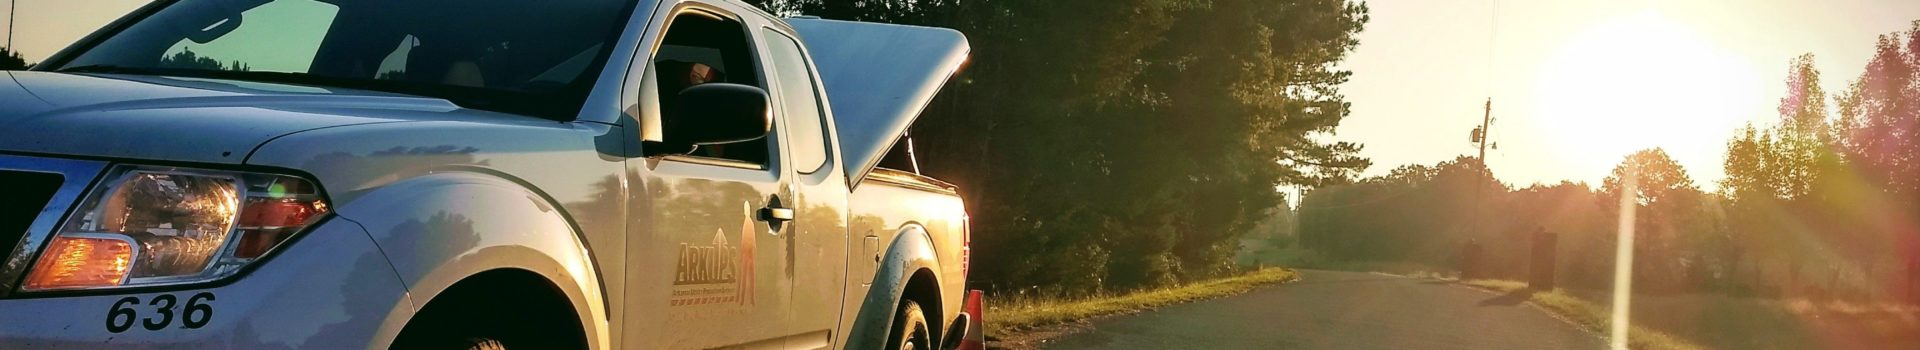 cropped-truck_with_sun_cbyers-e1573590300146.jpg